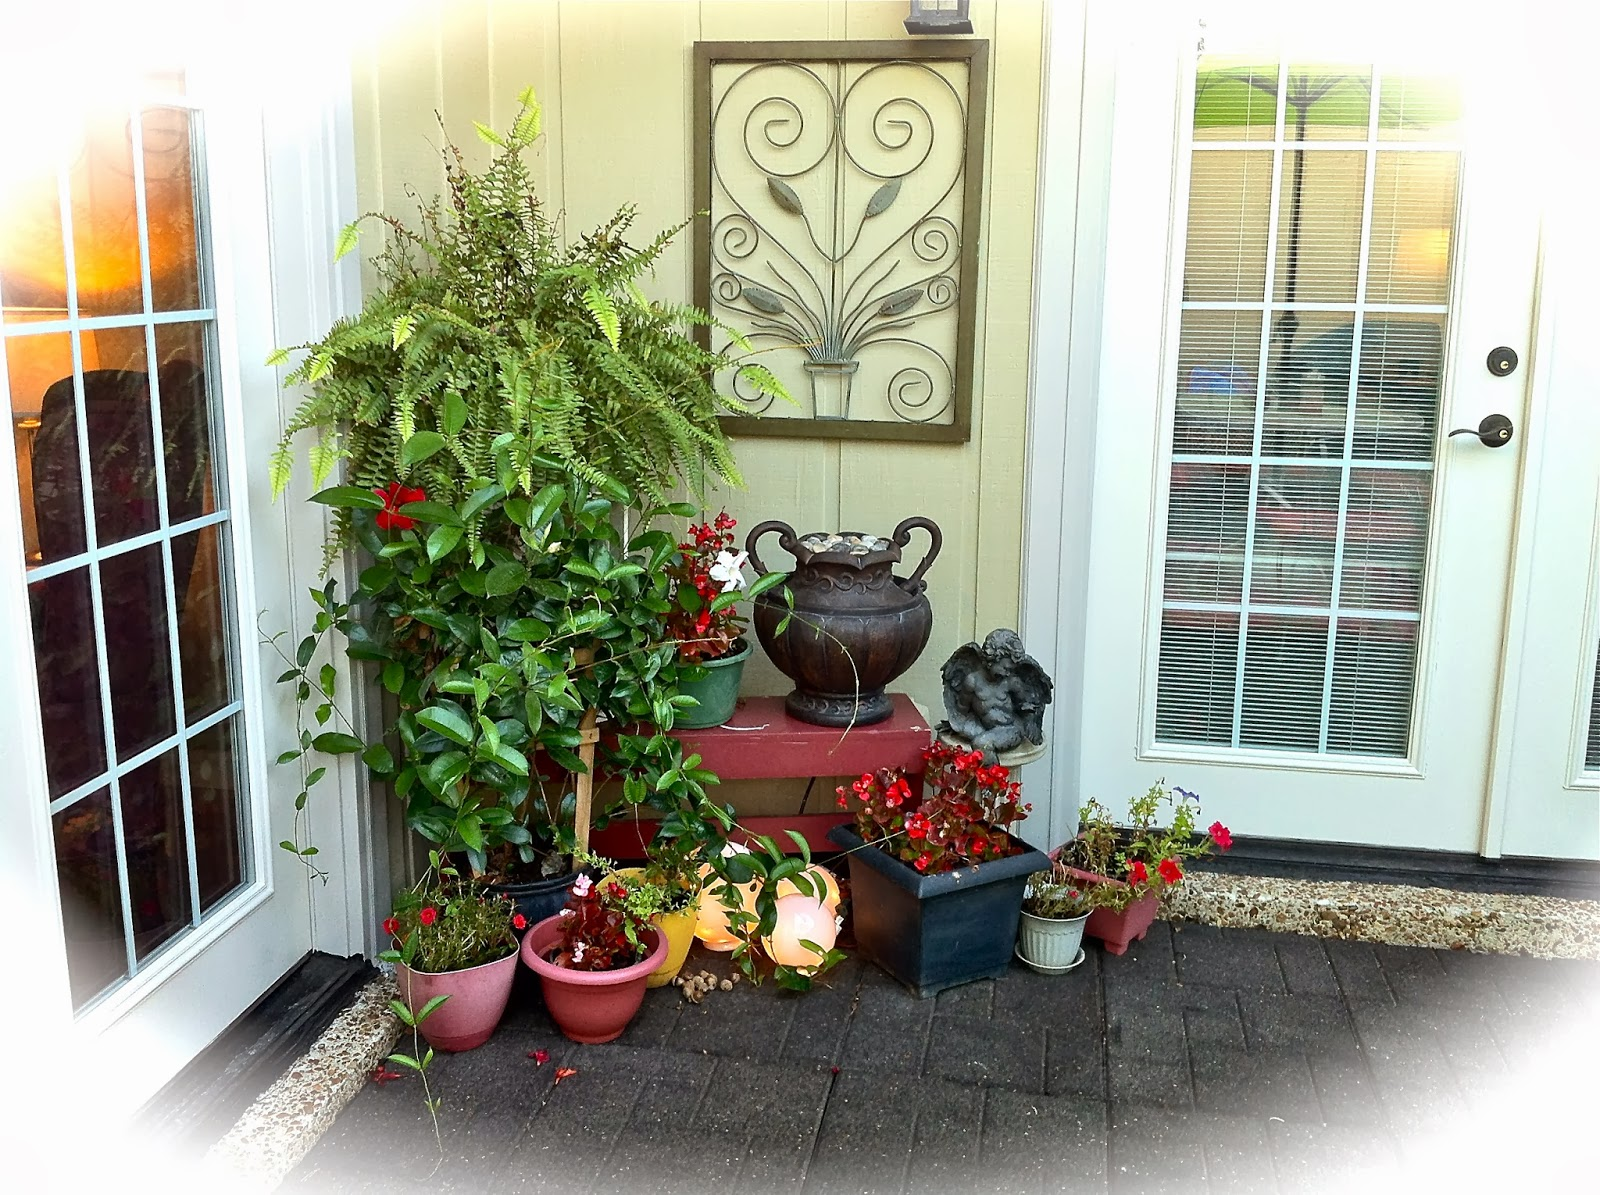 everyday donna how to decorate potted plants with burlap. Black Bedroom Furniture Sets. Home Design Ideas